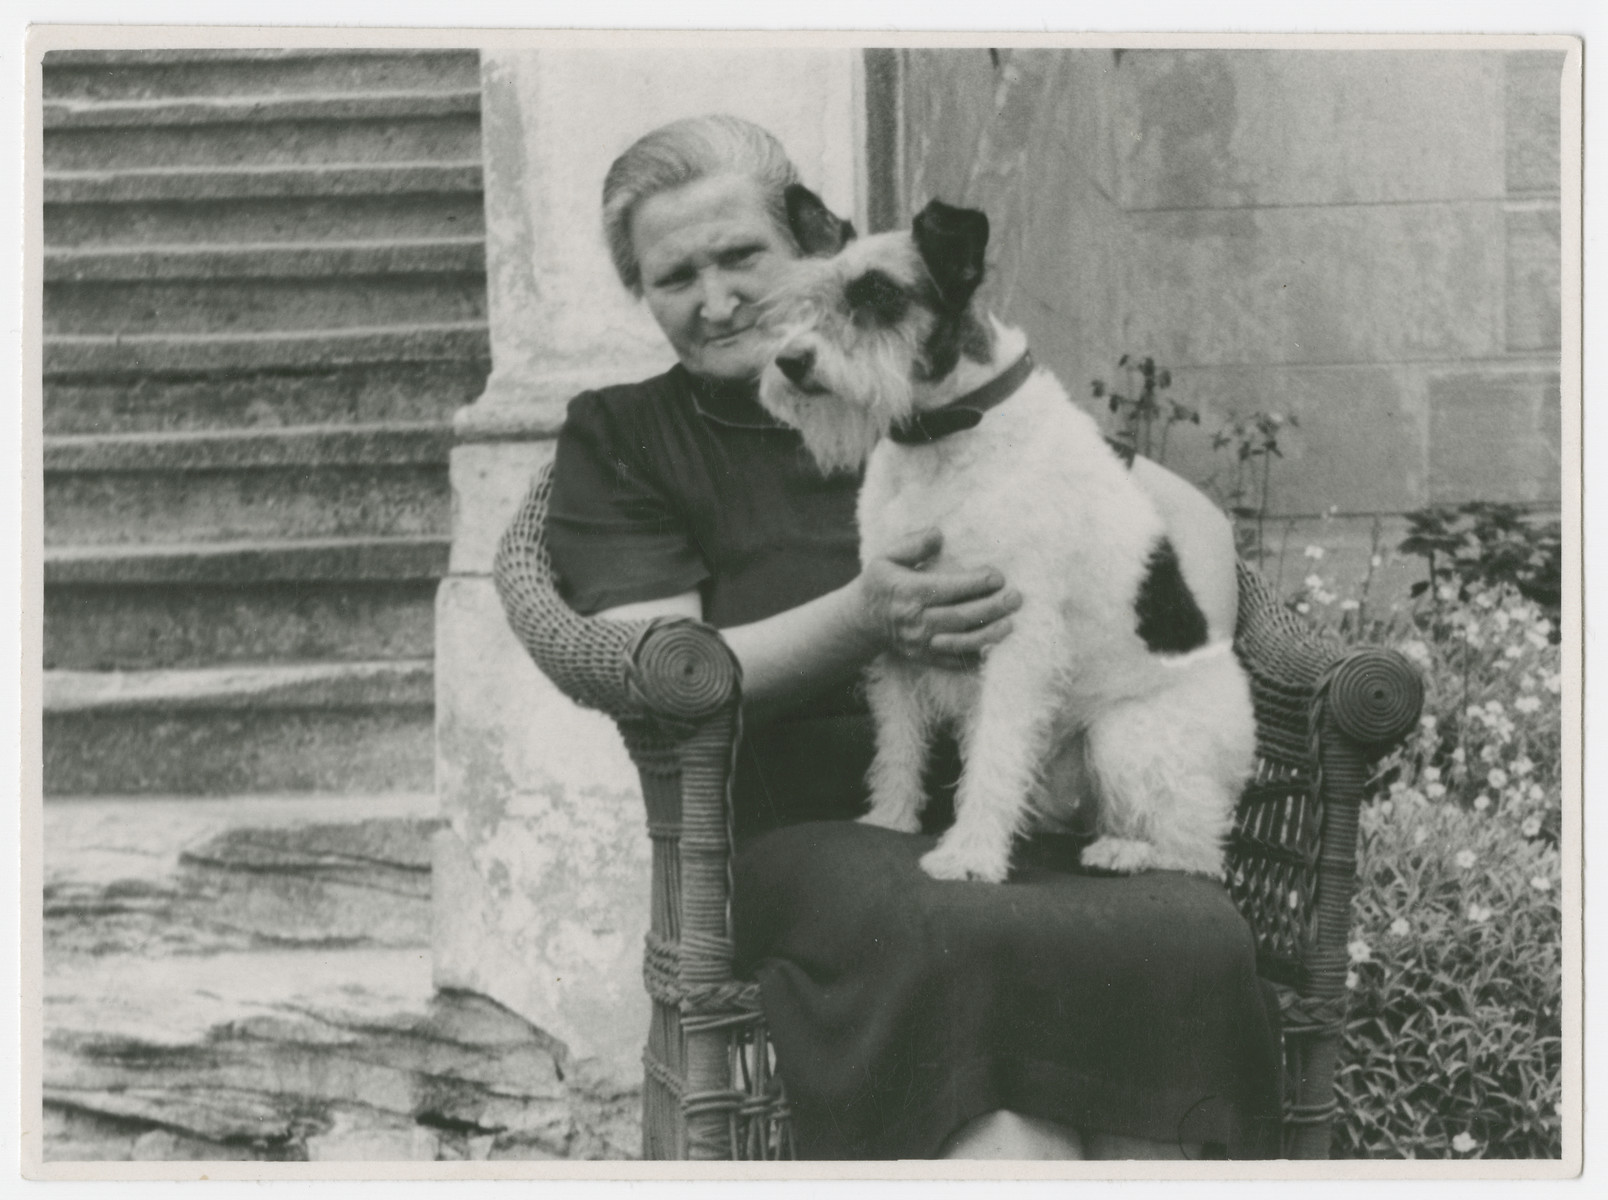 Anda Duchanova  poses with her dog on a wicker chair.  Anda Duchanova lived with the Grunwald family in Prague before the war.  She saved their belongings and photographs and restored them after the war.  Later, Kurt Grunwald and his one survivng brother-in-law, Frank Eisenstein,both agreed to give her the Einsenstein villa in Klanovice where she lived till her death.